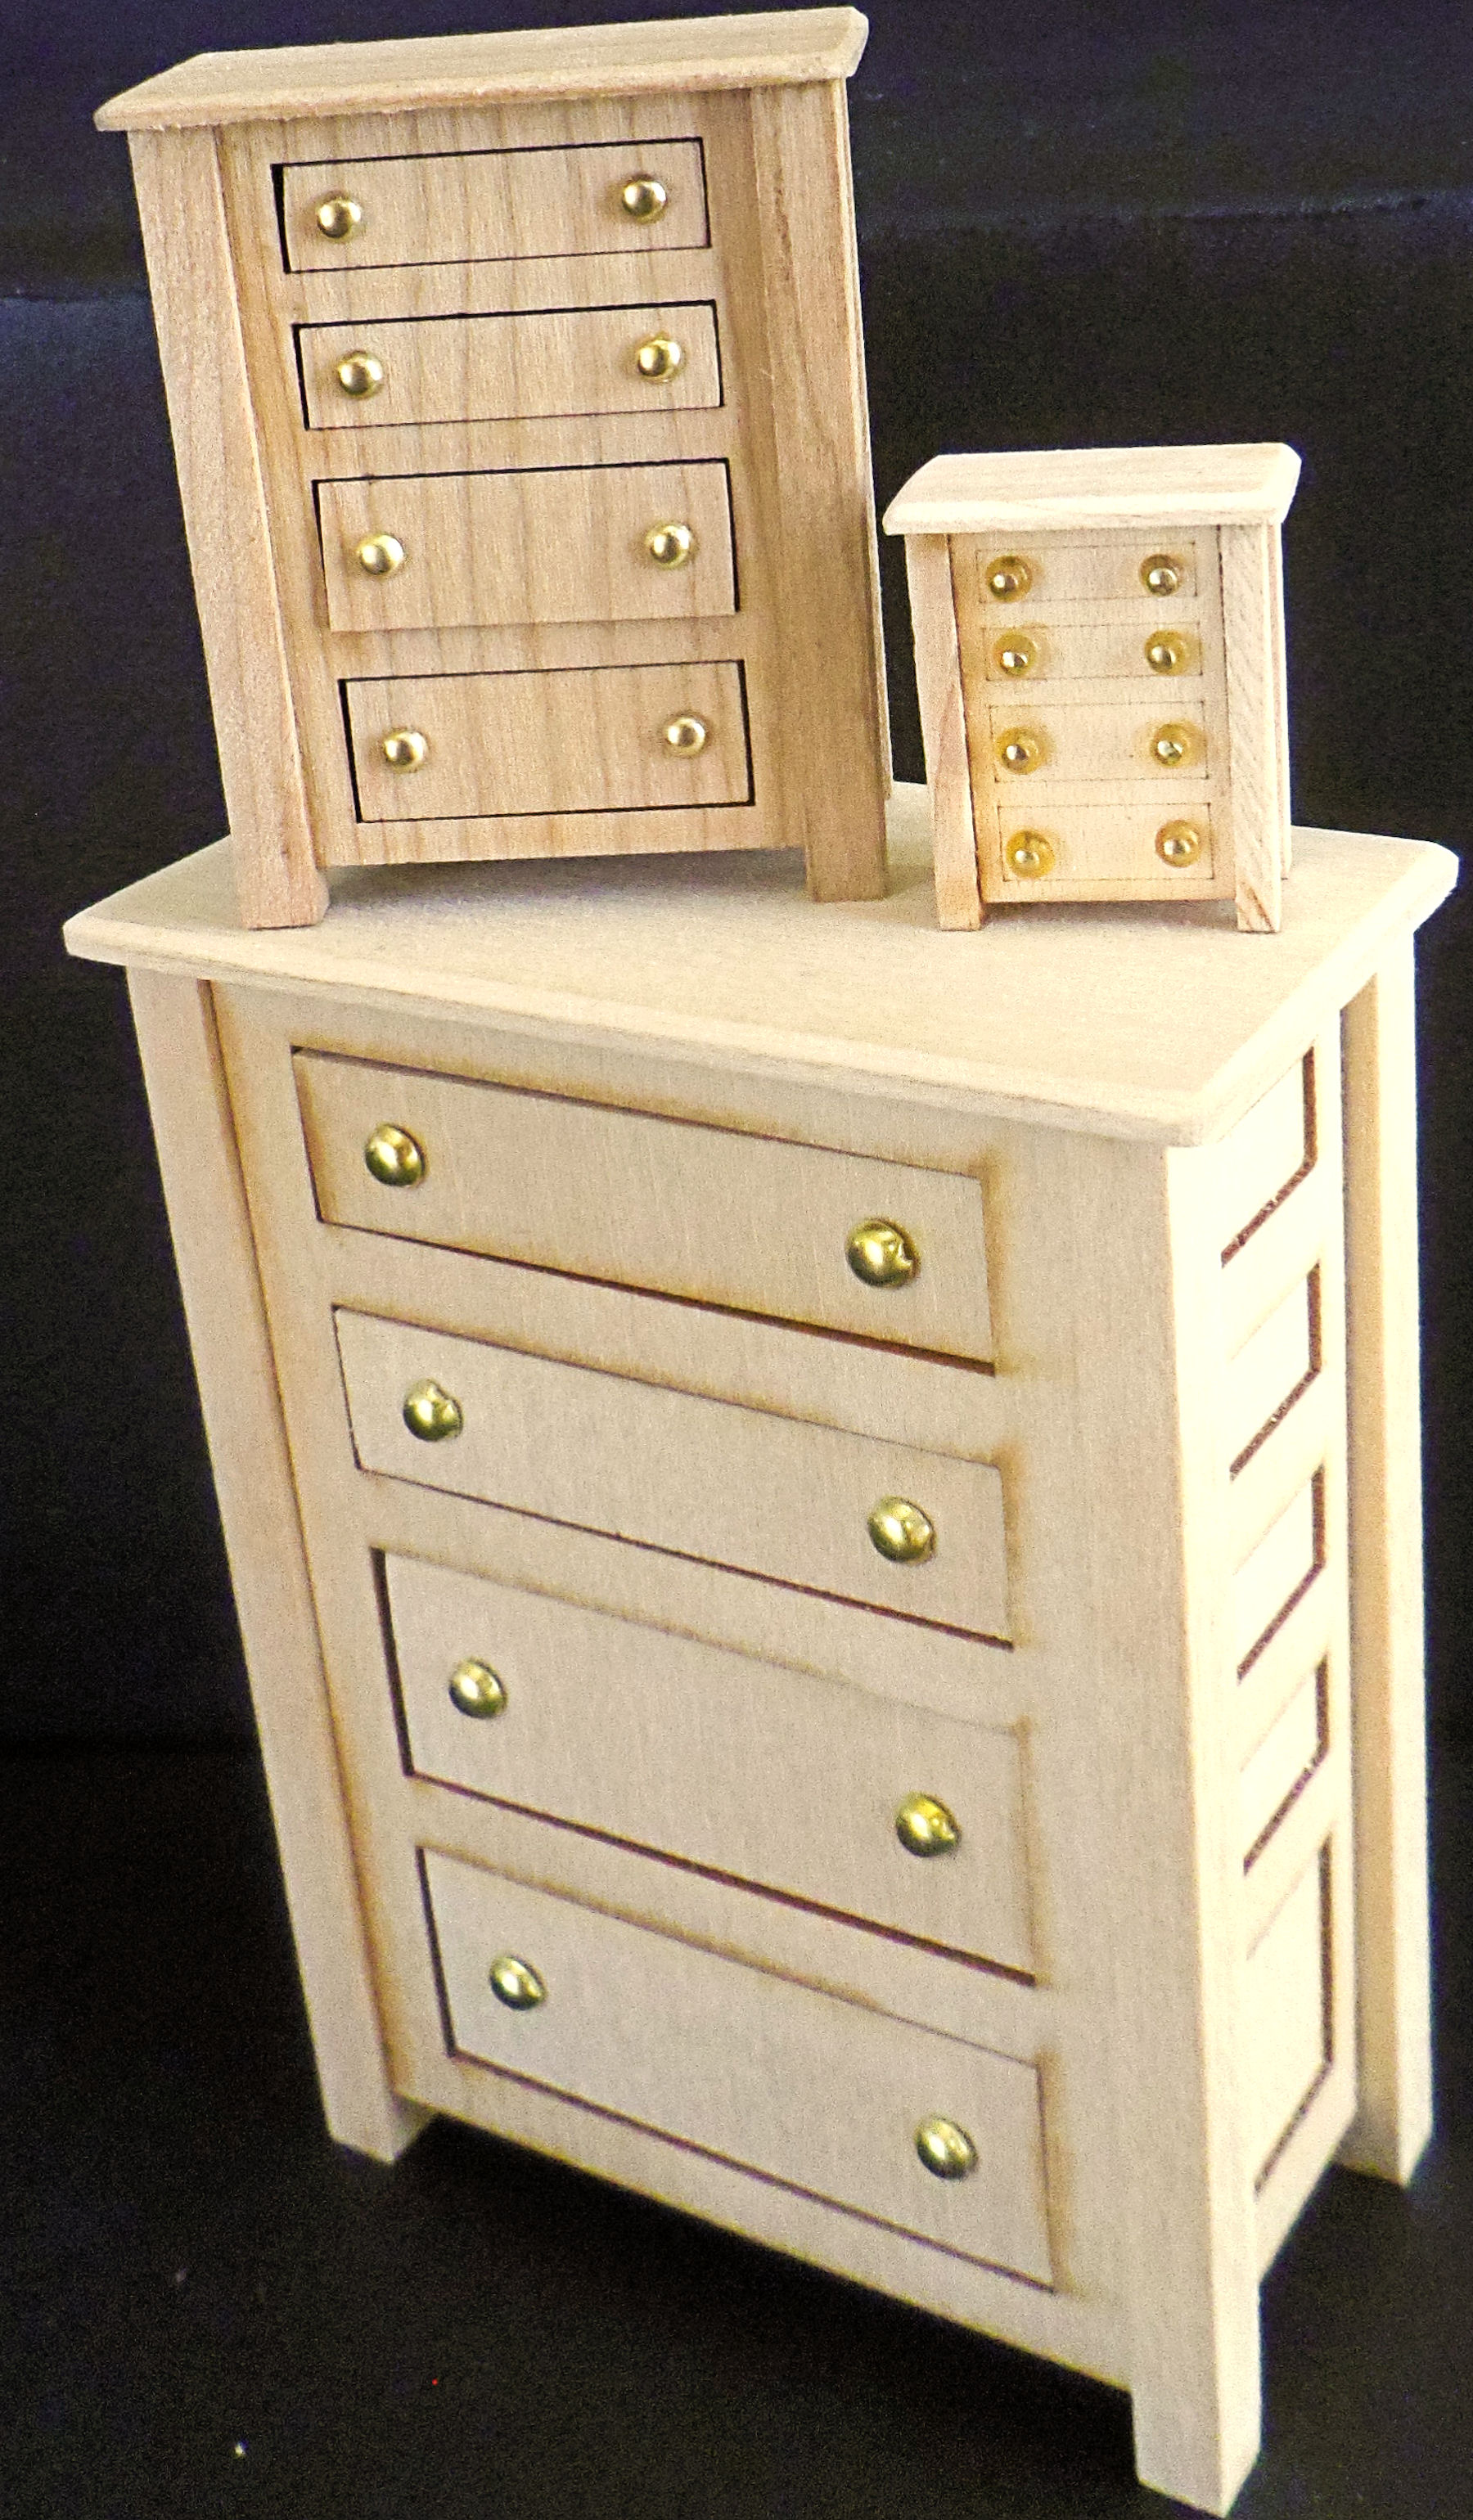 "1"" & 1/2"" Furniture"